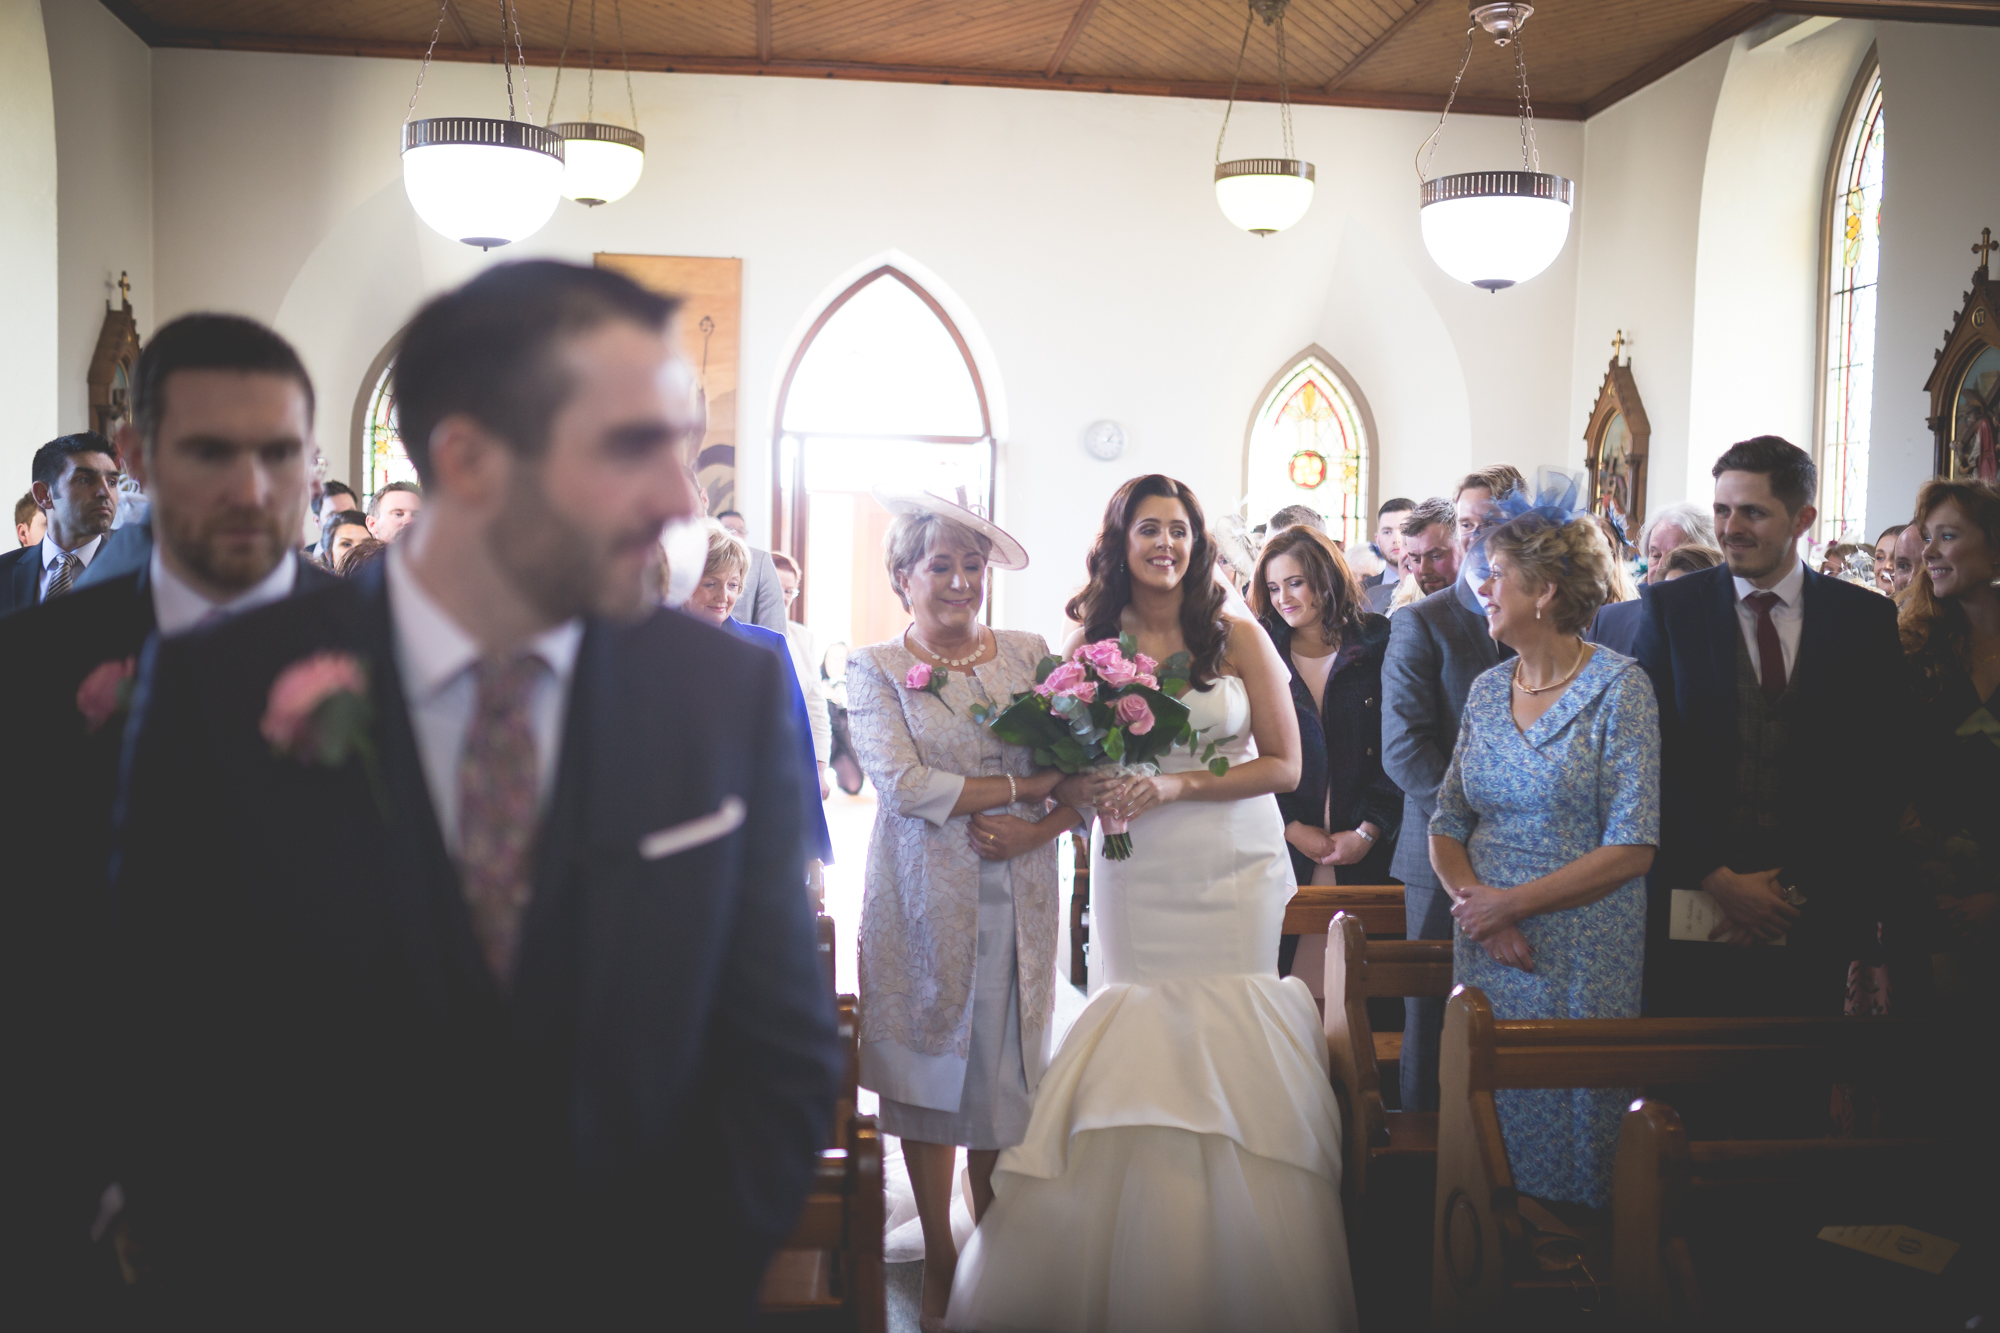 Francis&Oonagh-Ceremony-48.jpg